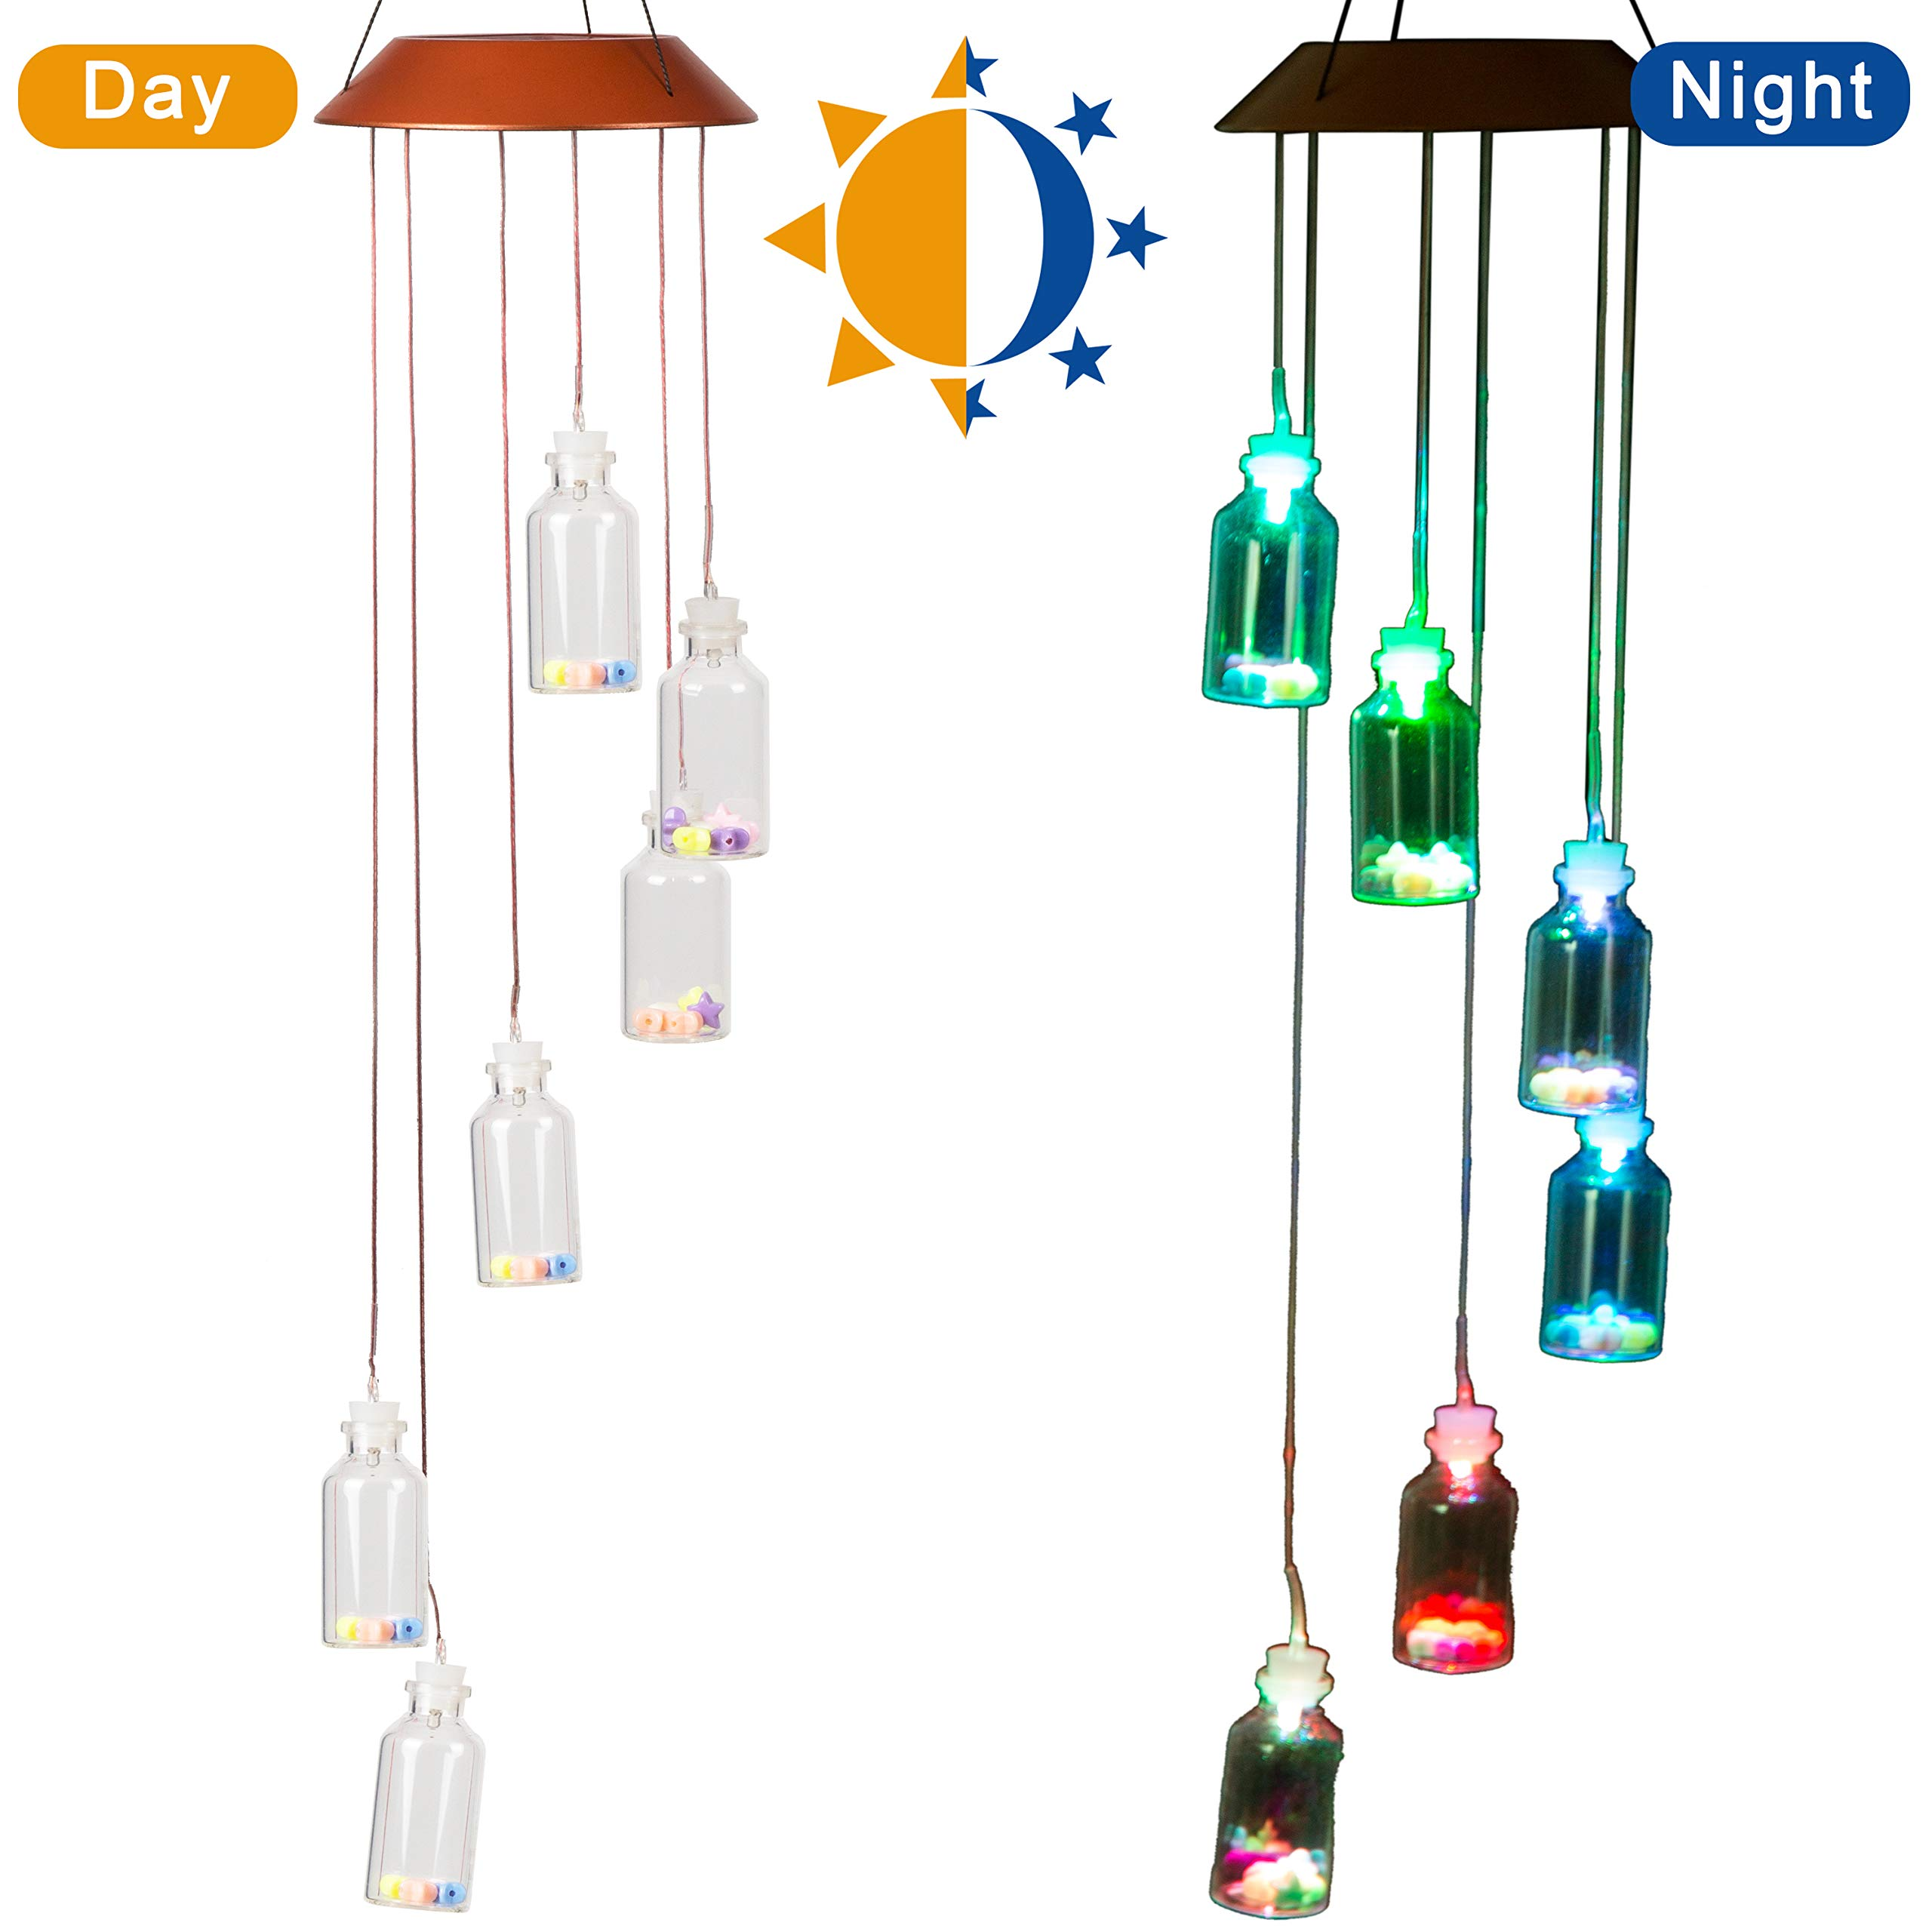 CXFF LED Solar Wishing Bottle Wind Chimes Outdoor - Waterproof Solar Powered LED Changing Light Color Wishing Bottle Mobile Romantic Wind-Bell for Home, Party, Festival Decor, Night Garden Decoration